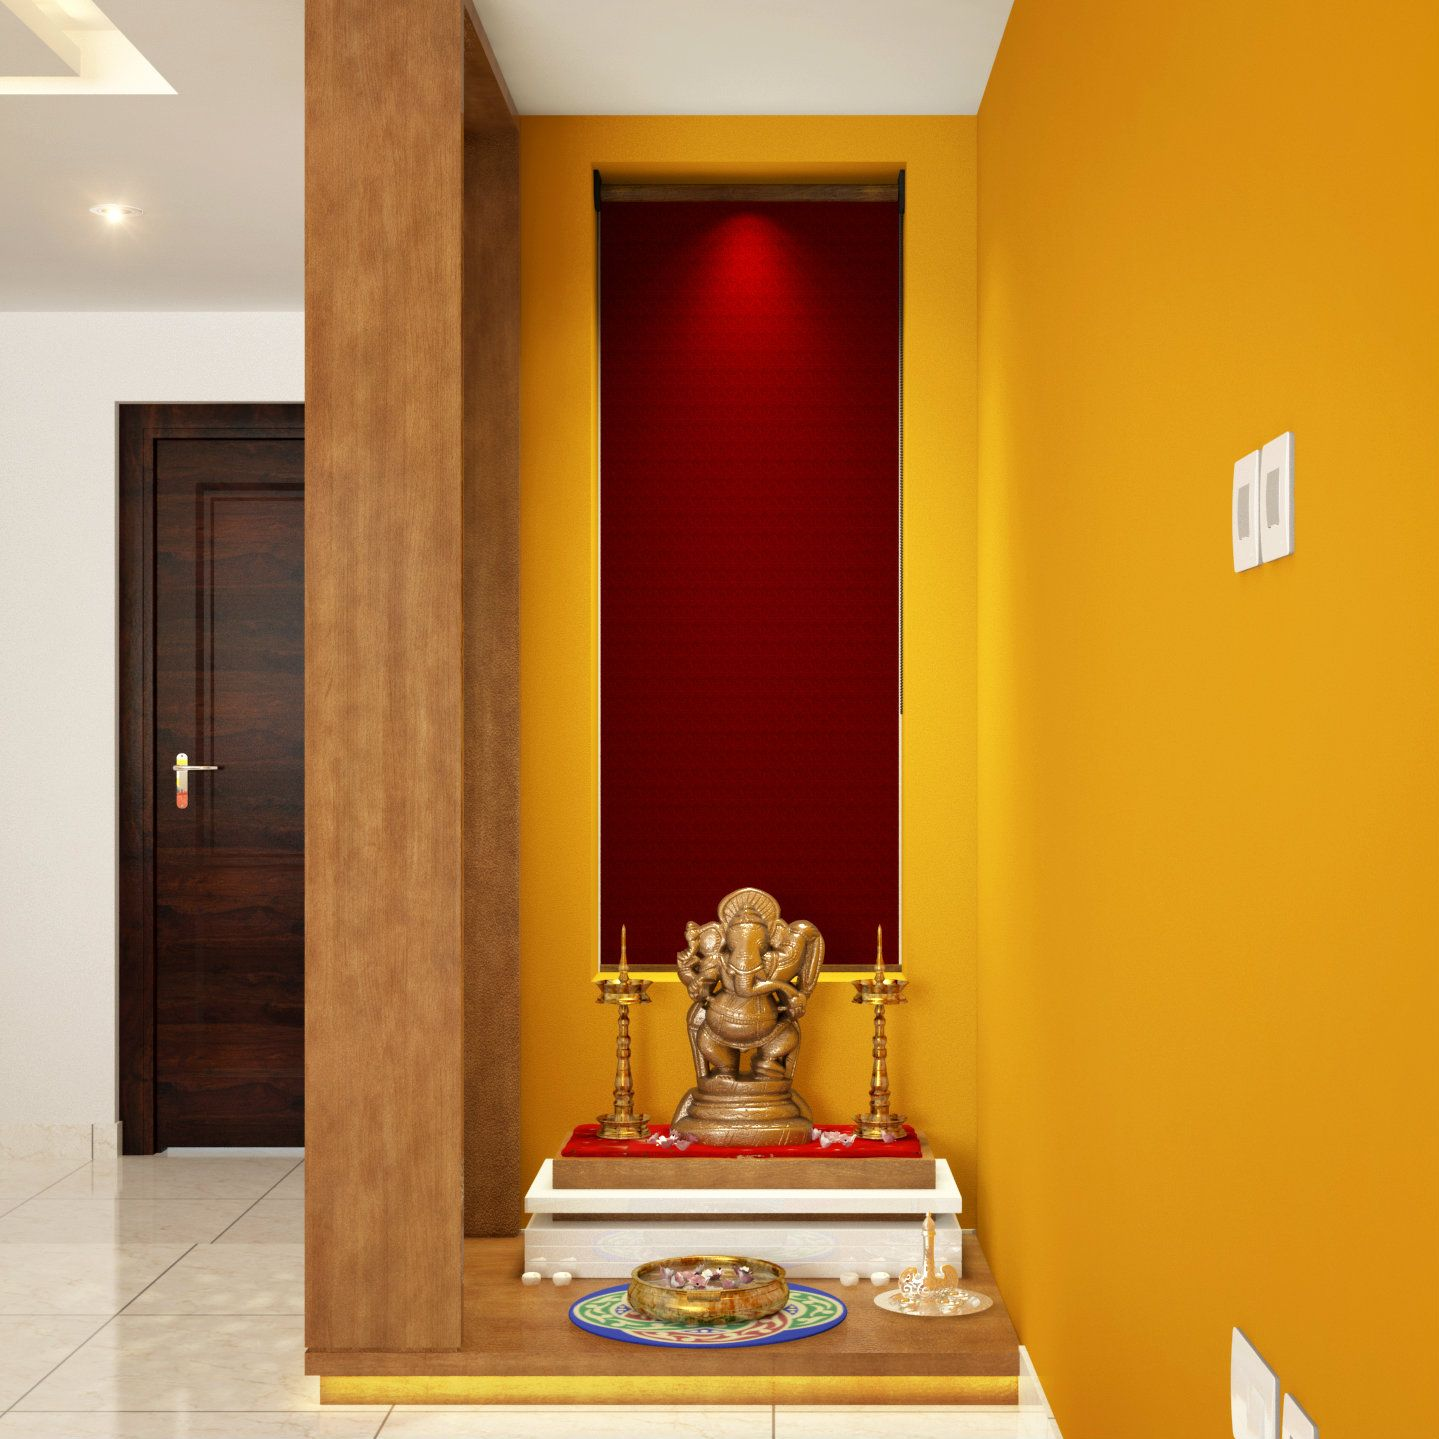 Niche converted to stylish Pooja corner | Pooja Room Design Ideas ...